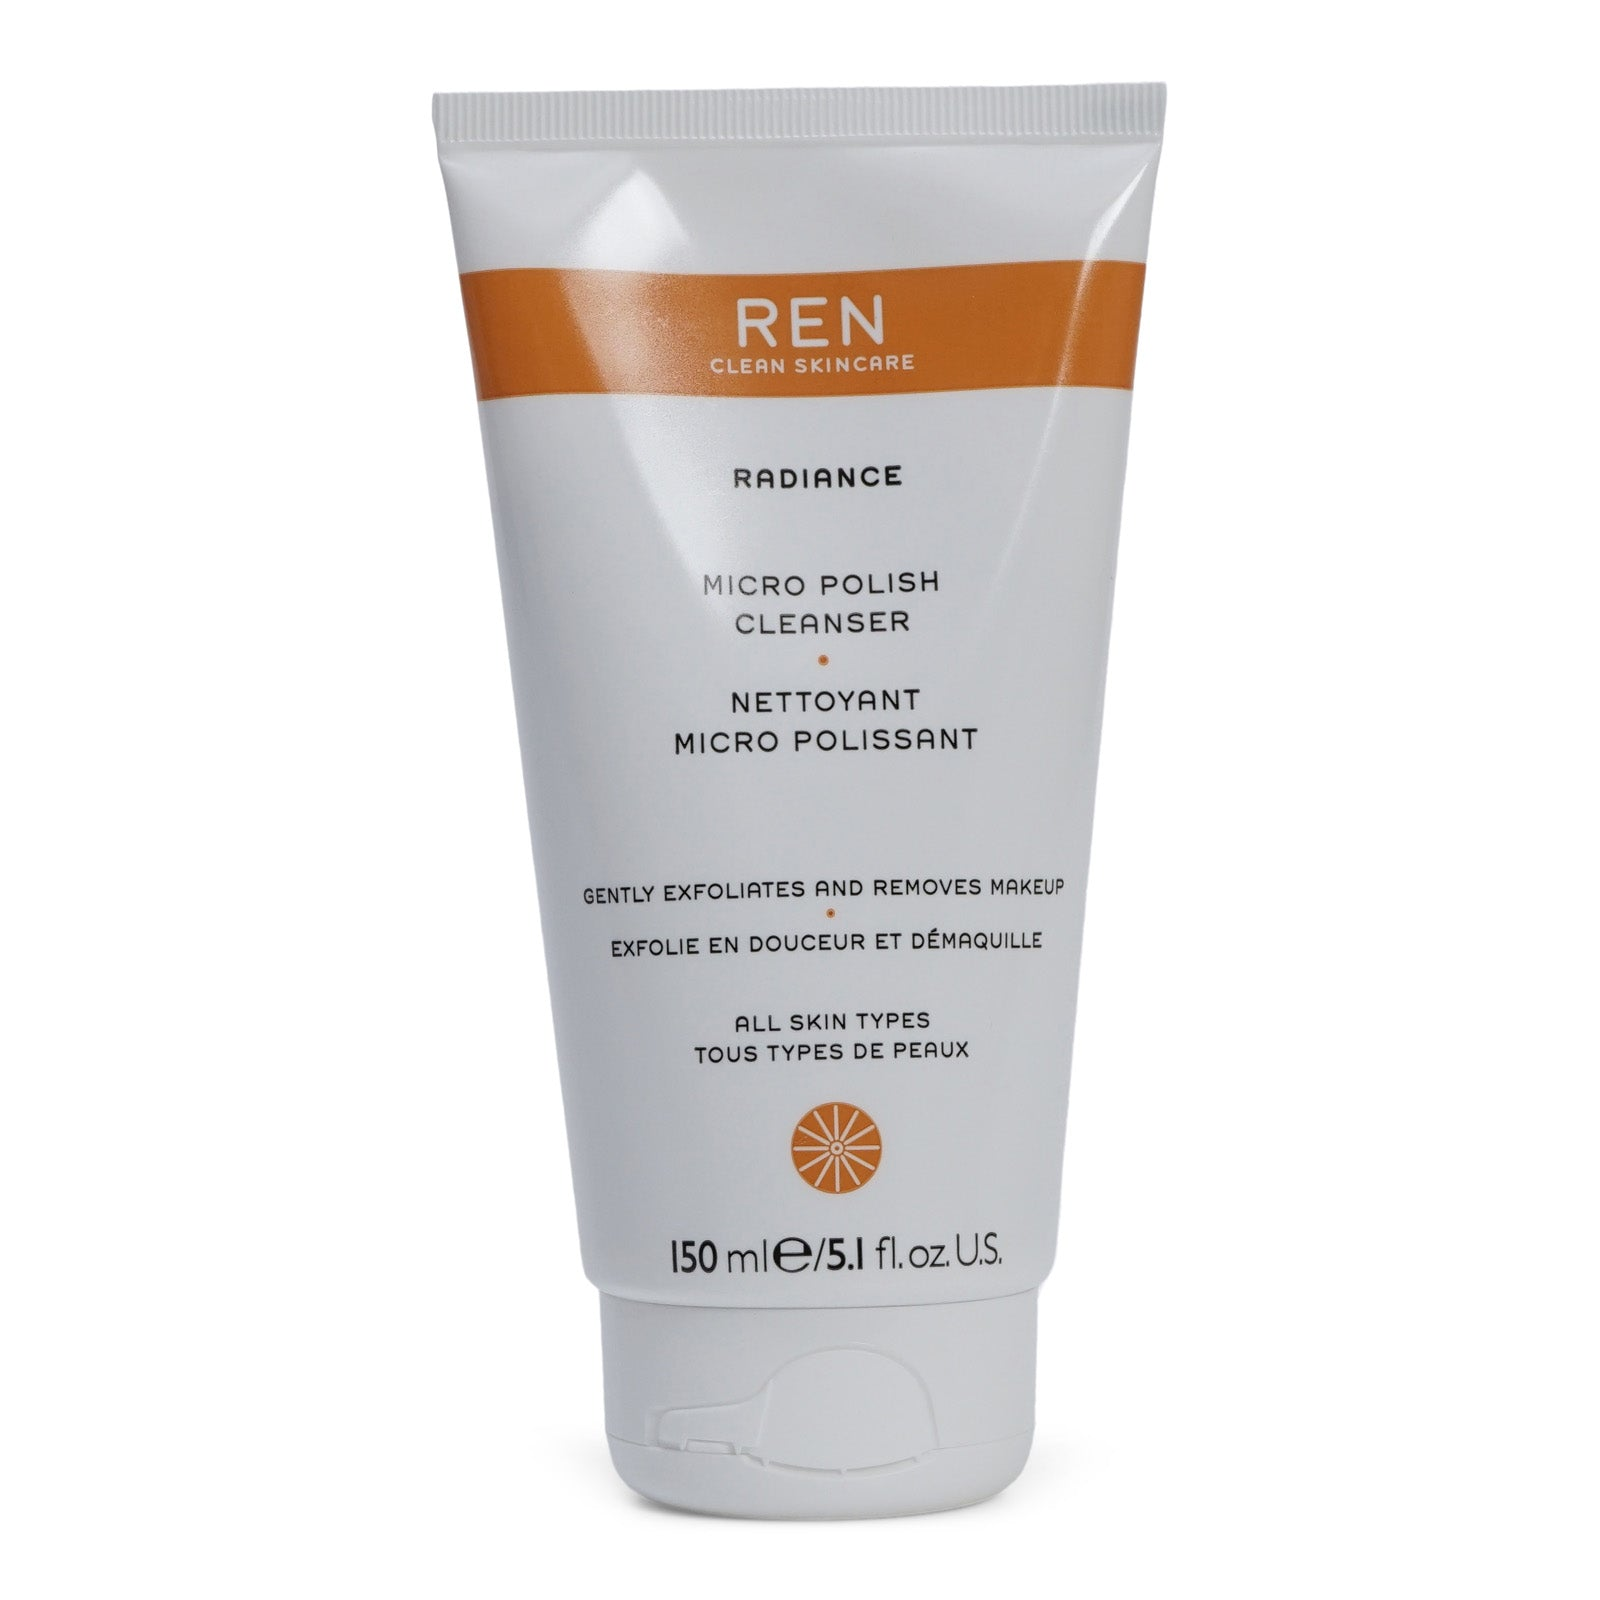 REN Skincare Radiance Micro Polish Cleanser- 2 in 1 chemical and physical exfoliating cleanser (150 ml / 5.1. fl. Oz.) (3/cs)